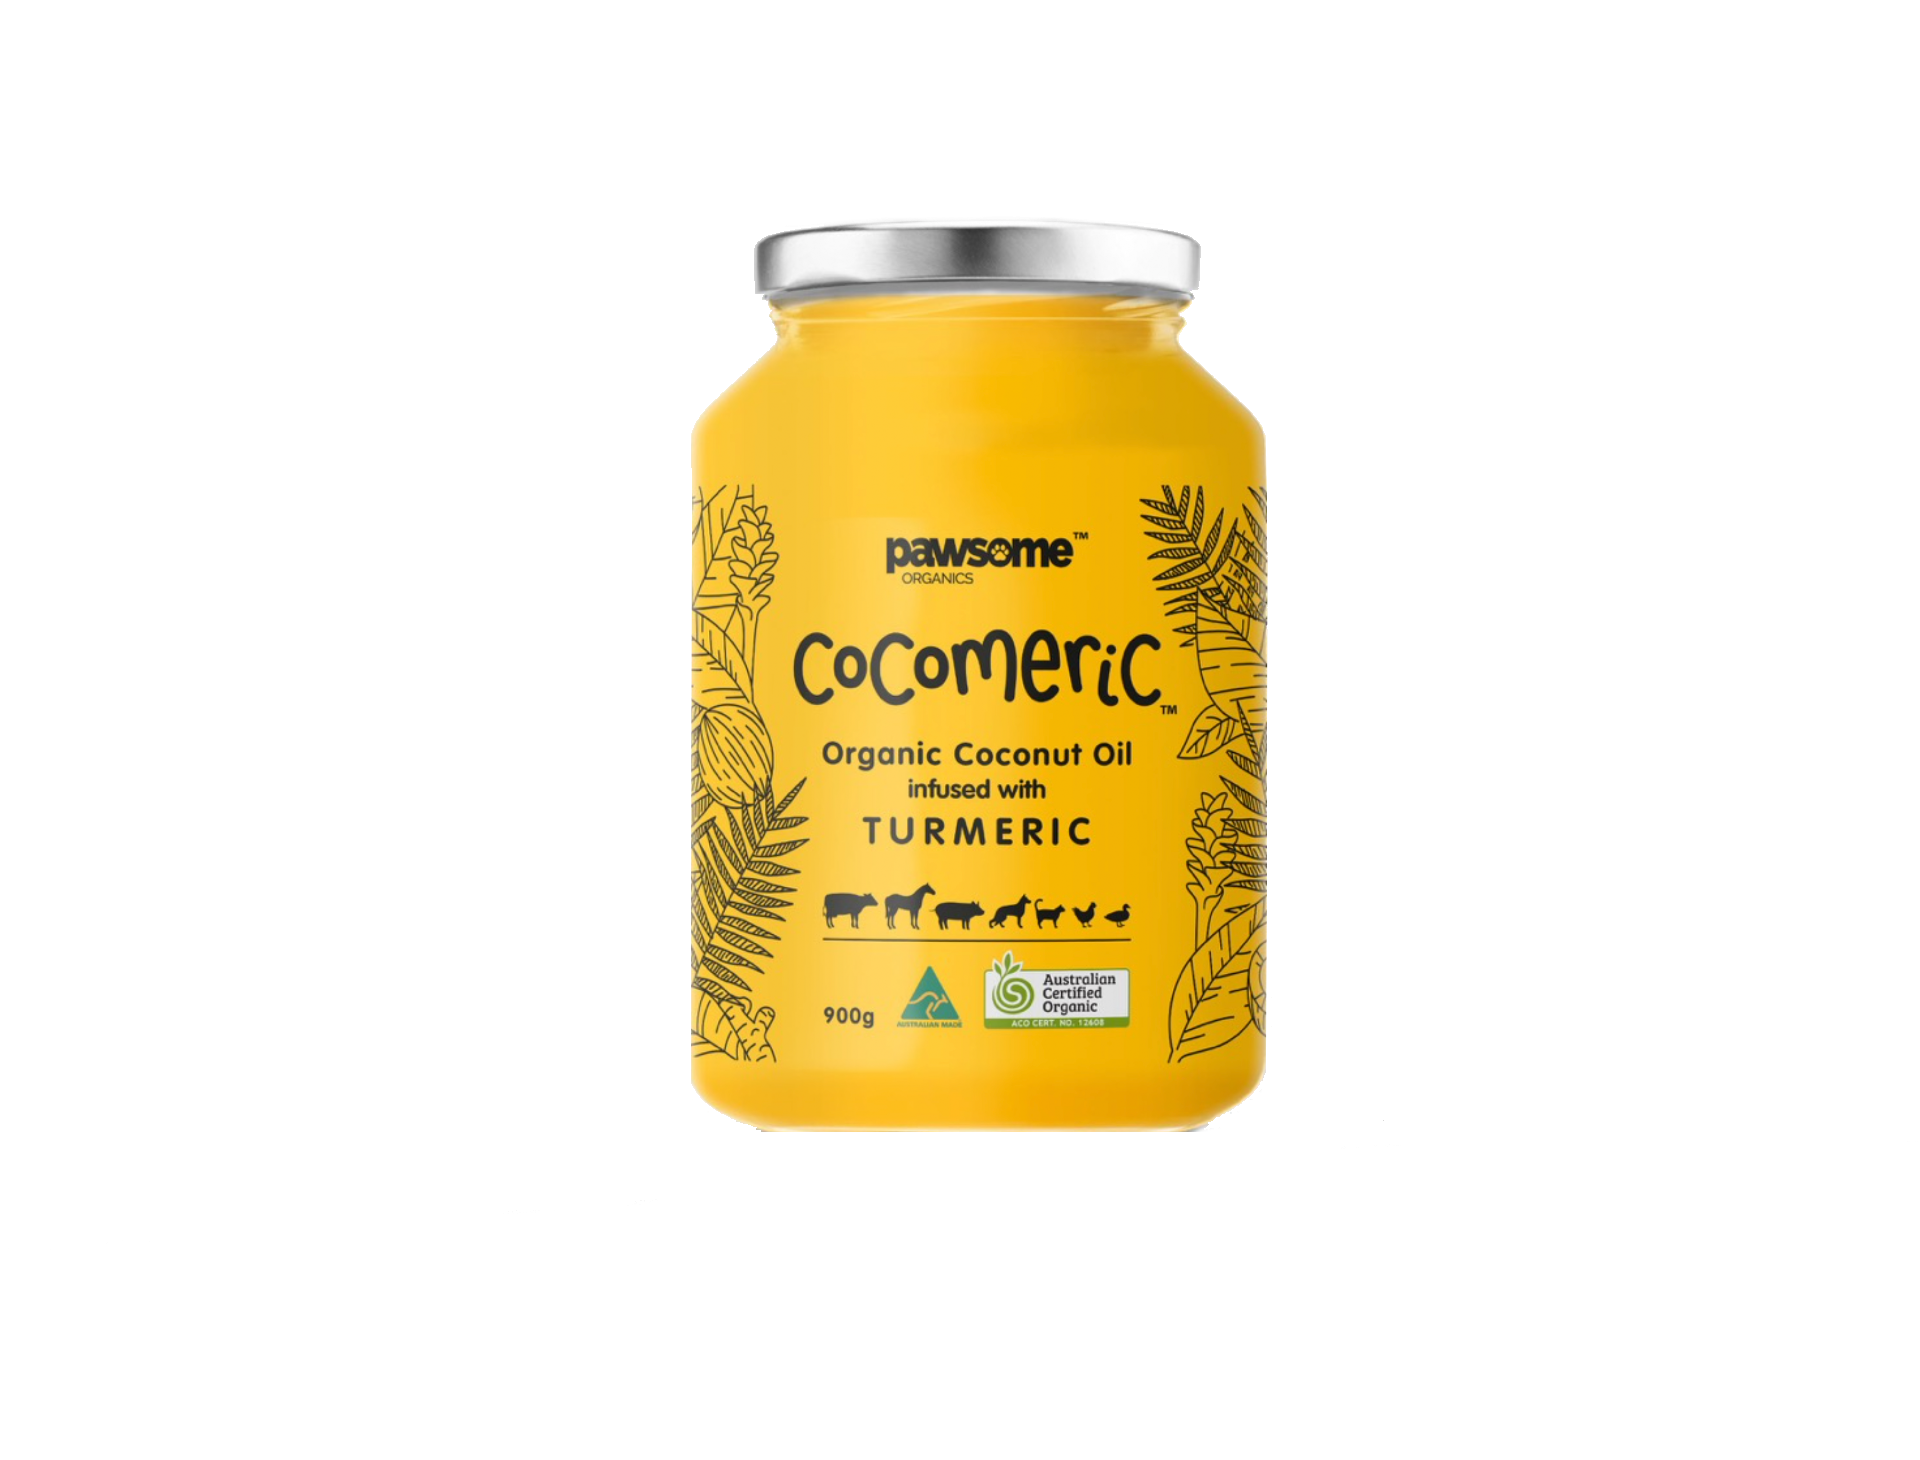 Cocomeric – a powerful, natural remedy